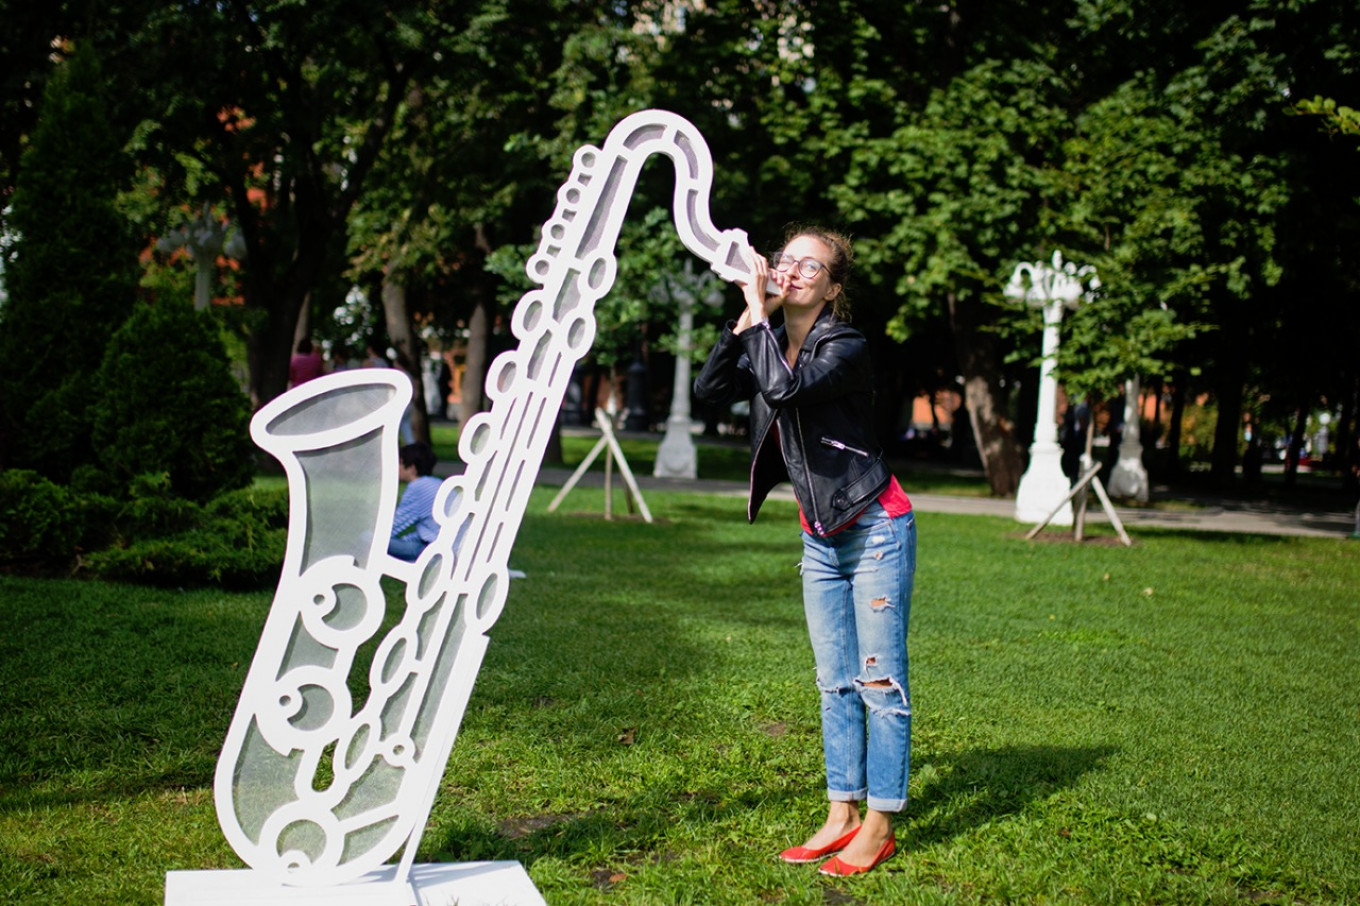 Every year the Hermitage Garden welcomes Jazz in the Garden.  Hermitage Garden